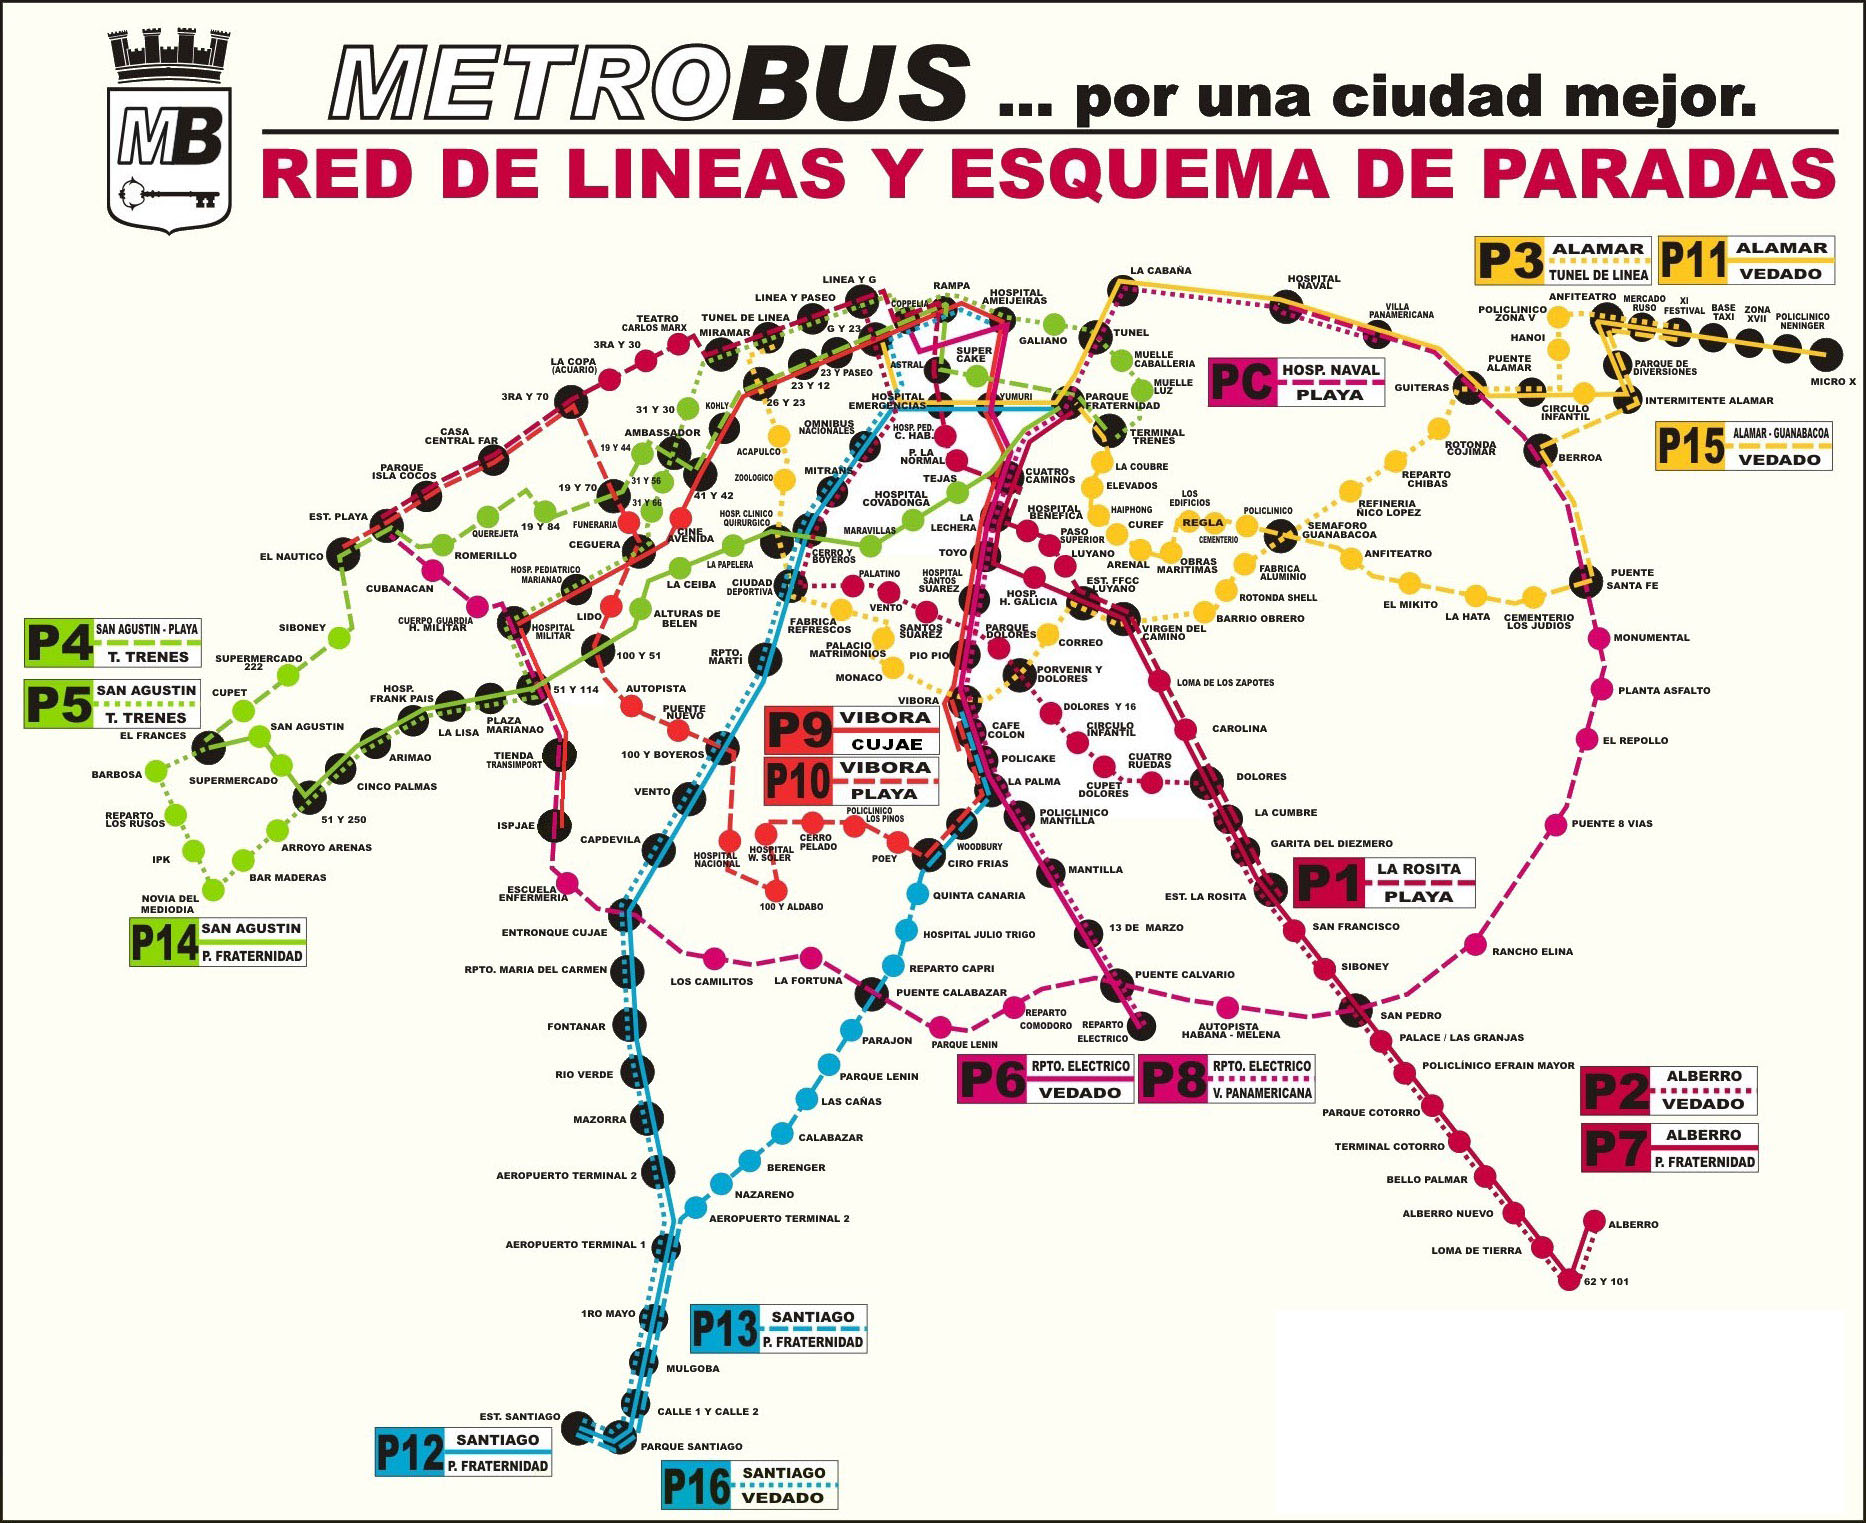 Transport in Cuba Viazul timetable 2018 Train timetable